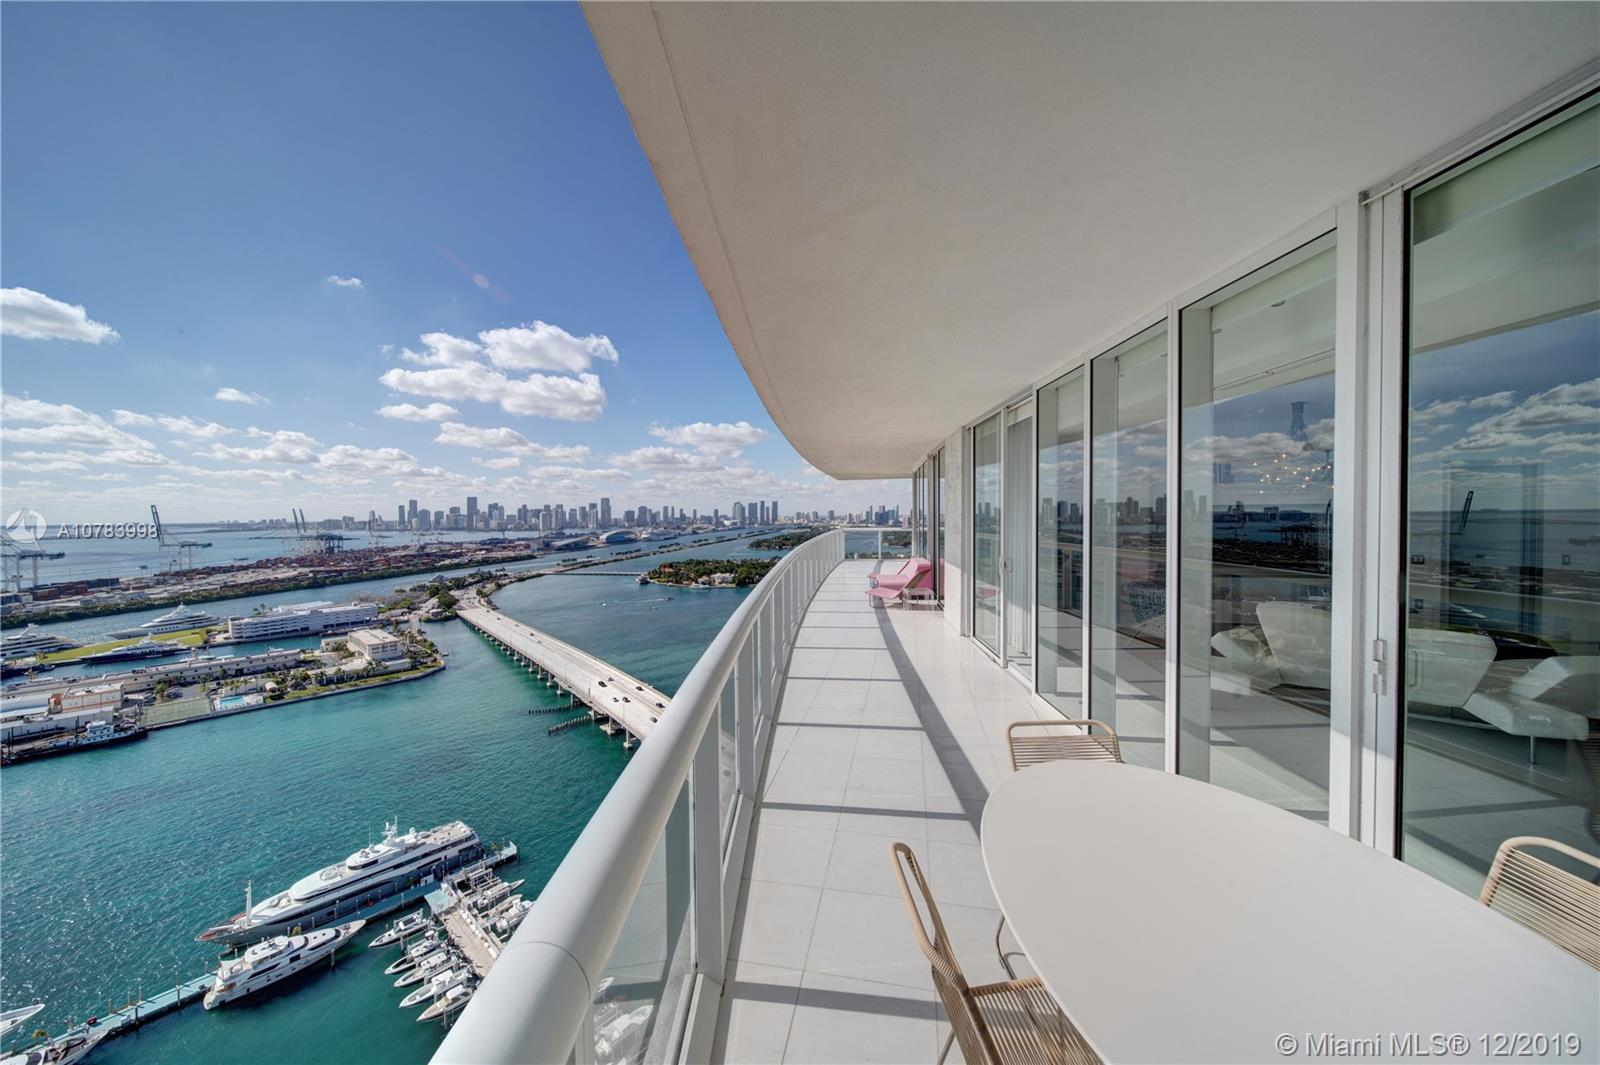 """Truly unique turn key residence at the Icon South Beach: enjoy the most spectacular views of Biscayne Bay and the sunset over the Miami Downtown skyline from this high floor corner 3 bed, 3.5 bathroom with a 700 sq ft wrap around balcony,   the """"01"""" line being the best corner residence  in the building. Luxury amenities include a state of the art spa and gym, a bi-level pool deck with relaxation gardens, outdoor lounges, exquisite italian restaurant, 2 swimming pools, concierge, 24 hr security and much more. Enjoy the the best lifestyle the SoFi neighborhood has to offer with a mega yacht marina, plenty of top restaurants to choose from, a beautiful promenade and South Pointe Park.  Easy to show. Call listing agent"""